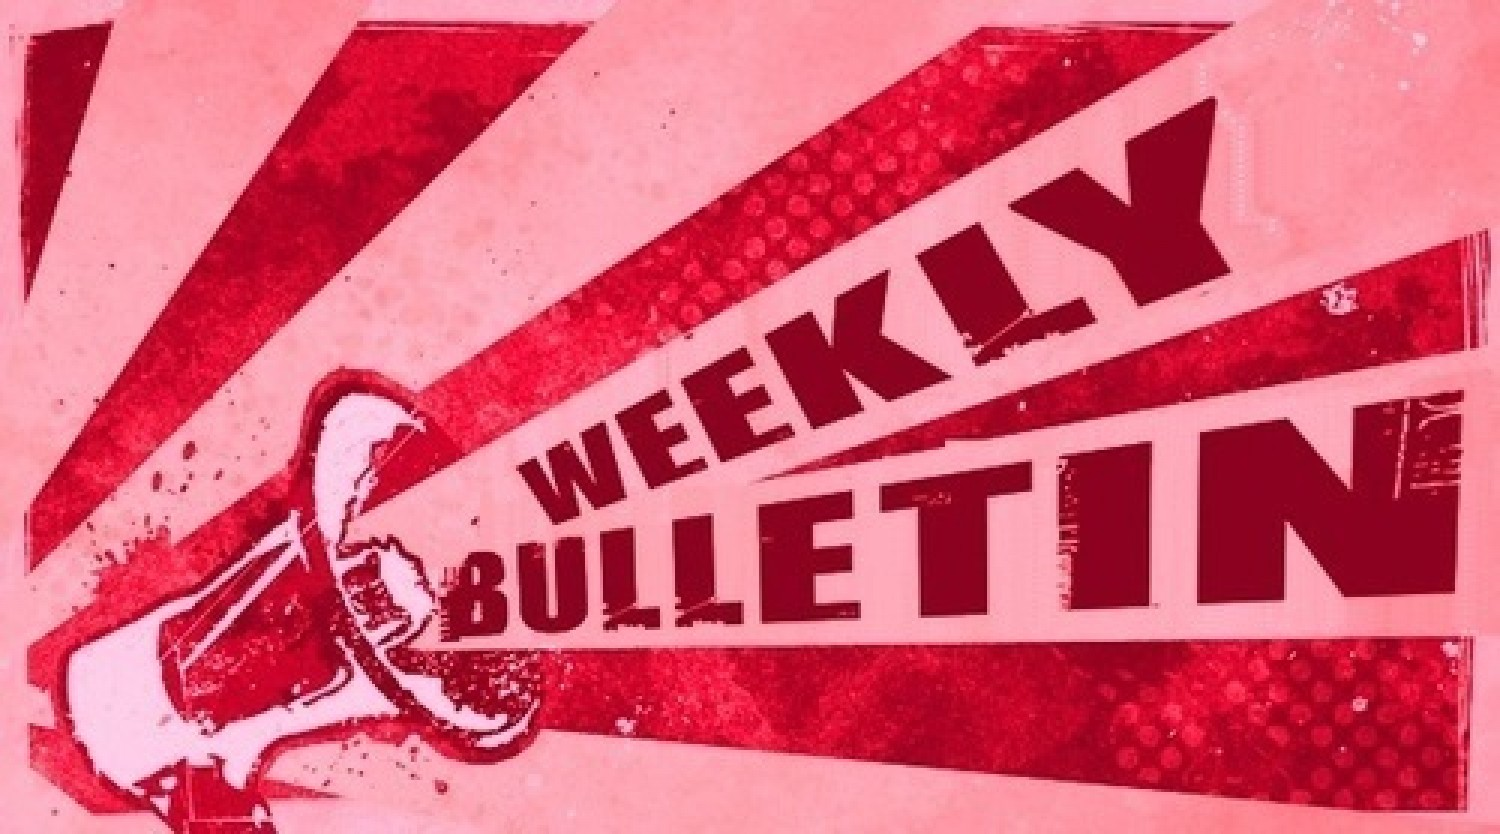 Weekly Bulletin May 10th